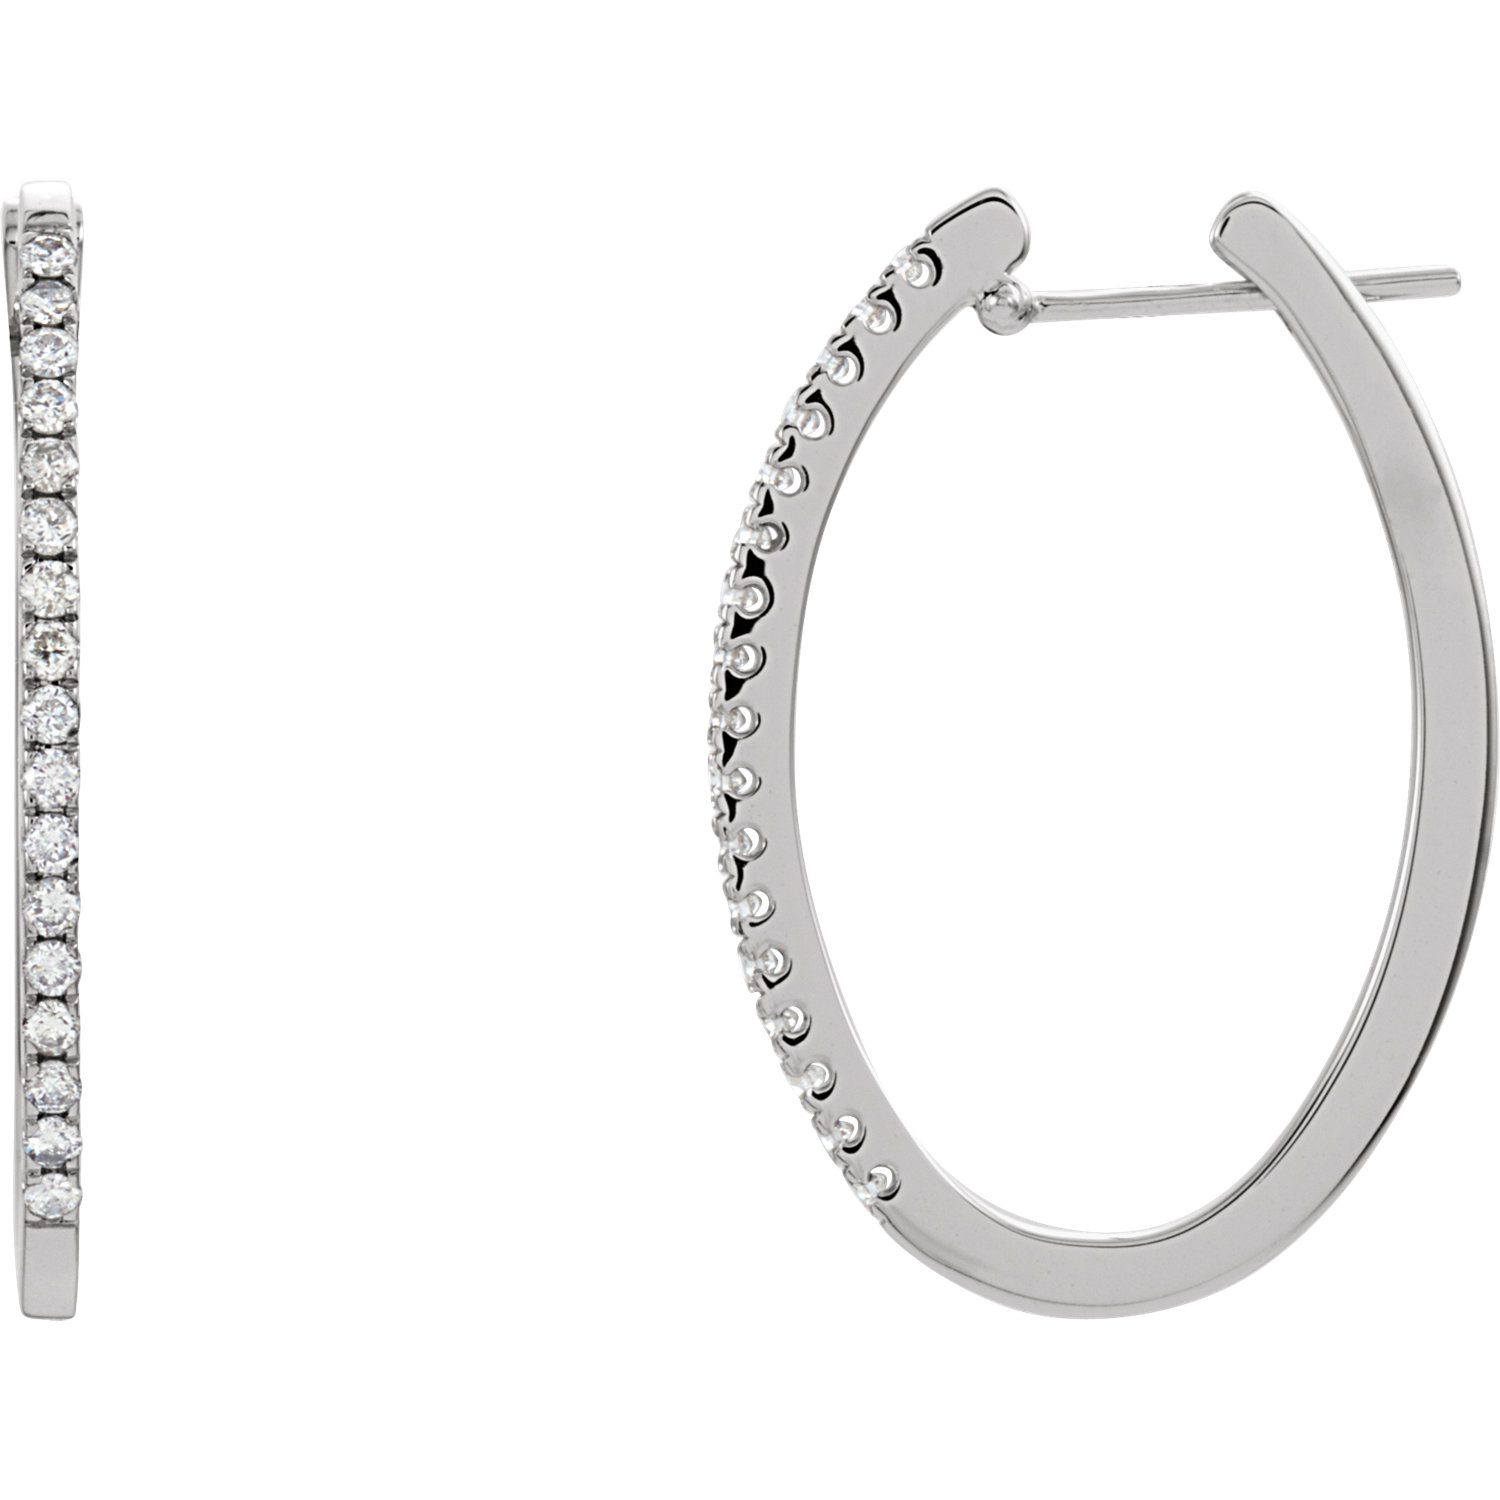 14K White 1 2 CTW Diamond Hoop Earrings The Jewelry Shop